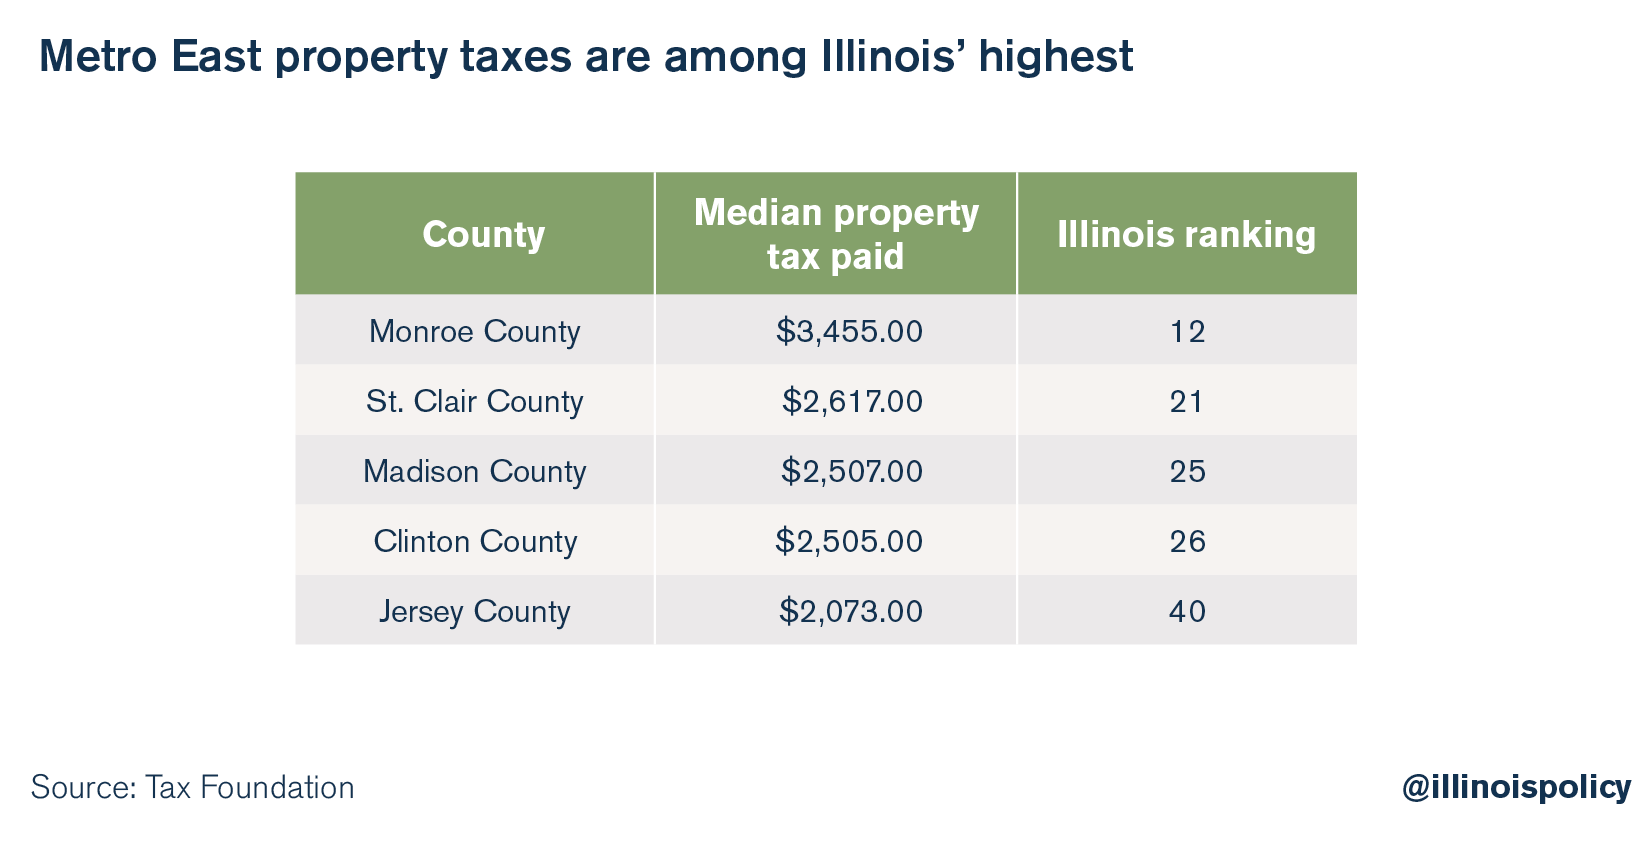 Metro East property taxes